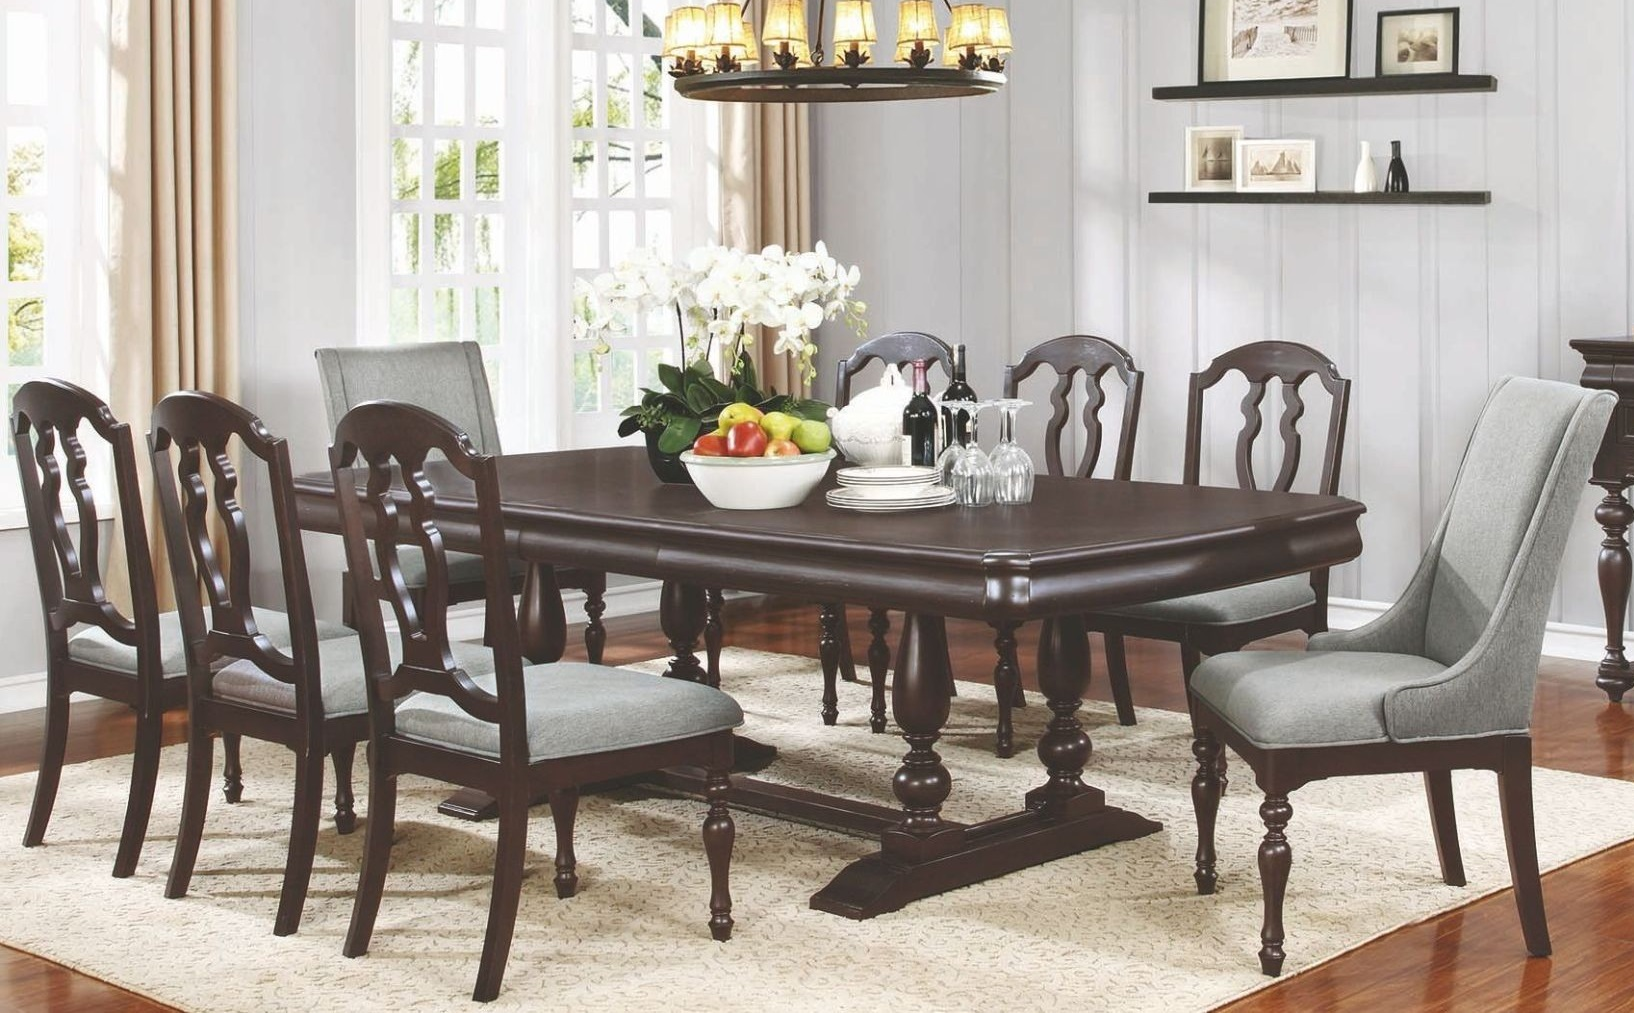 LEON 9 PIECE DINING TABLE SET & LEON 9 PIECE DINING TABLE SET | Quality furniture at affordable ...